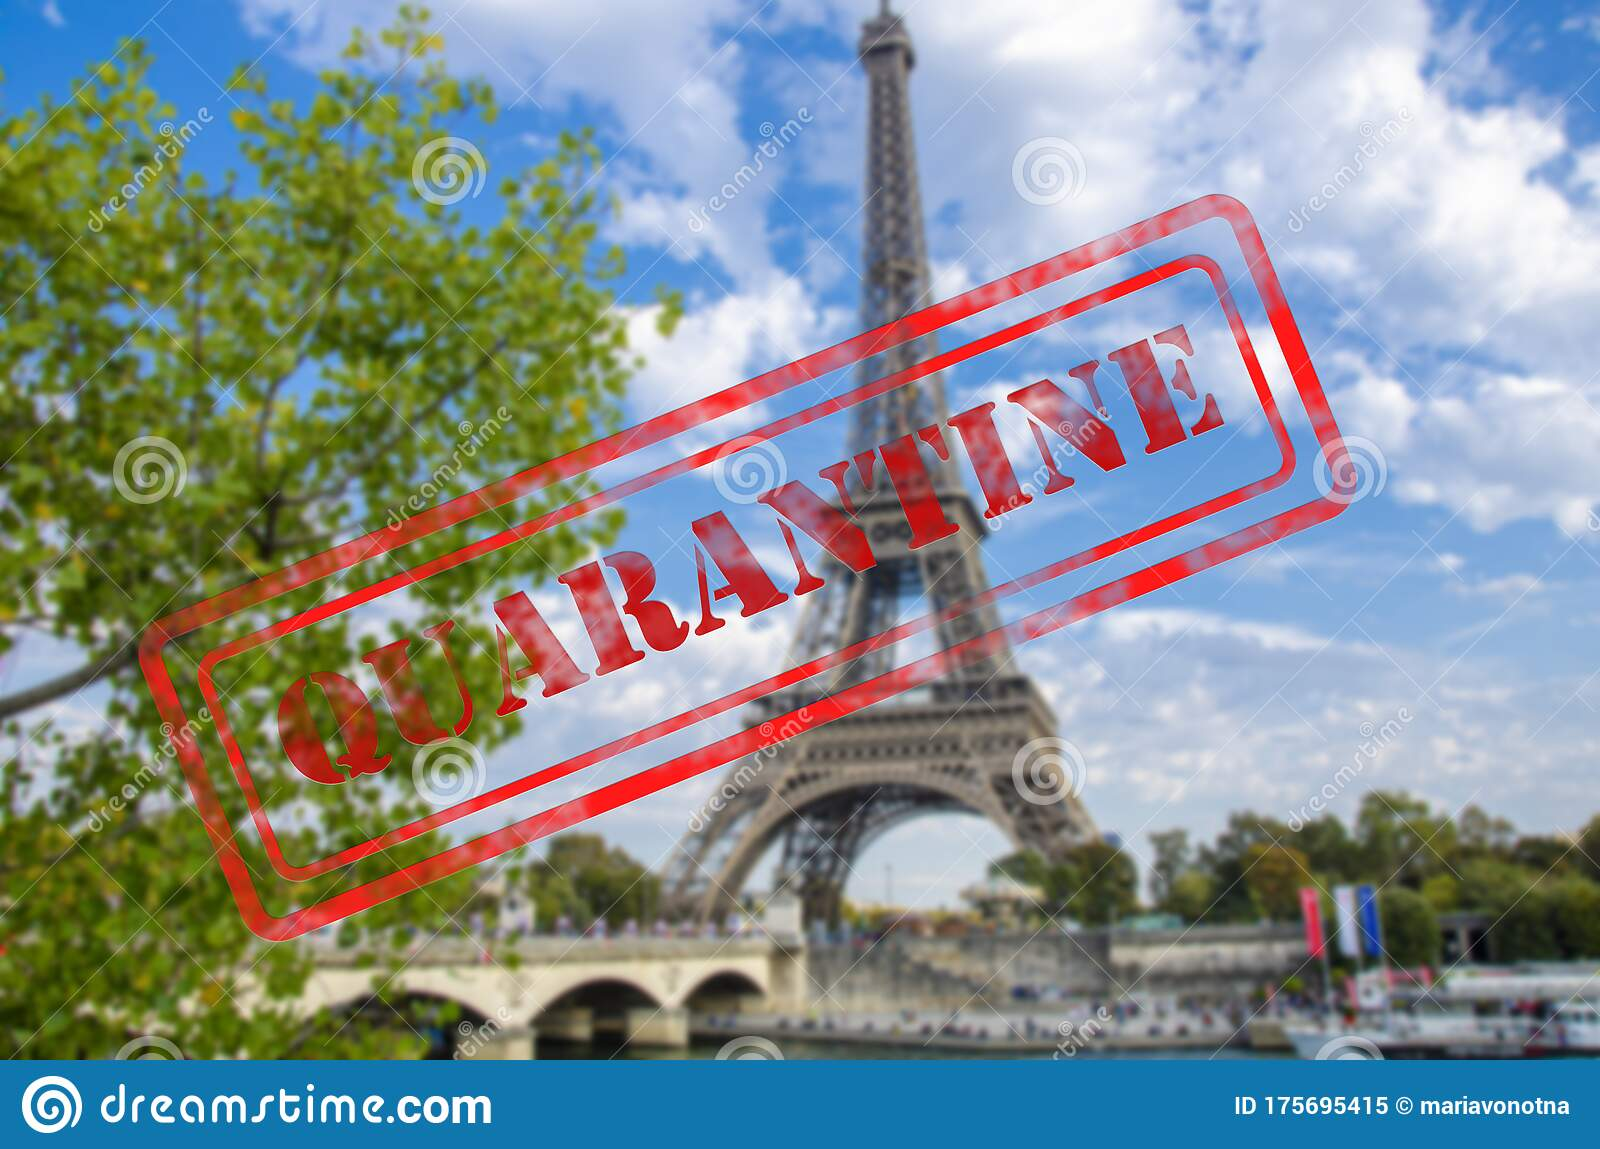 Quarantine Sign Over Eiffel Tower In Paris France Stock Image Image Of Danger Care 175695415